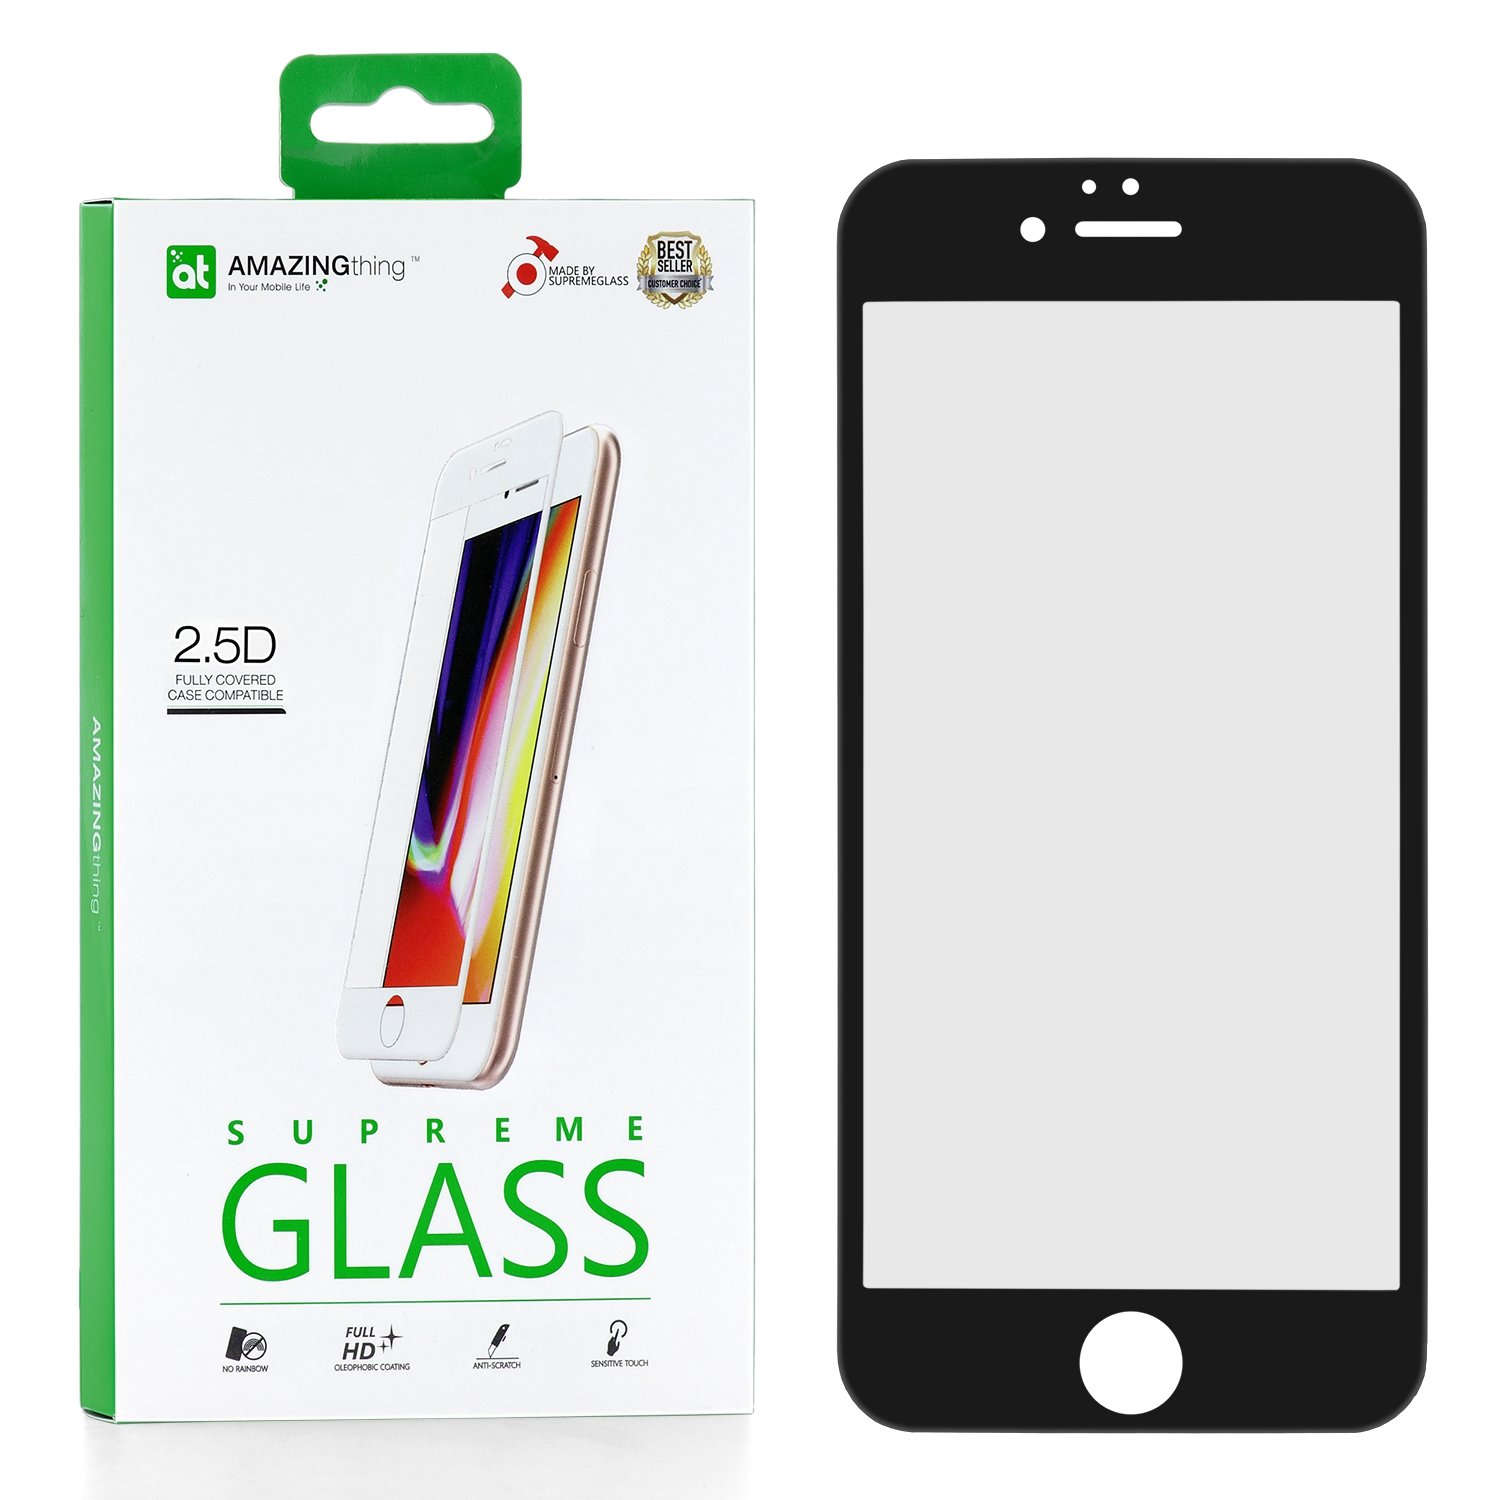 Защитное стекло AMAZINGthing SupremeGlass Full Glue Black для Apple iPhone 6 Plus/6S Plus